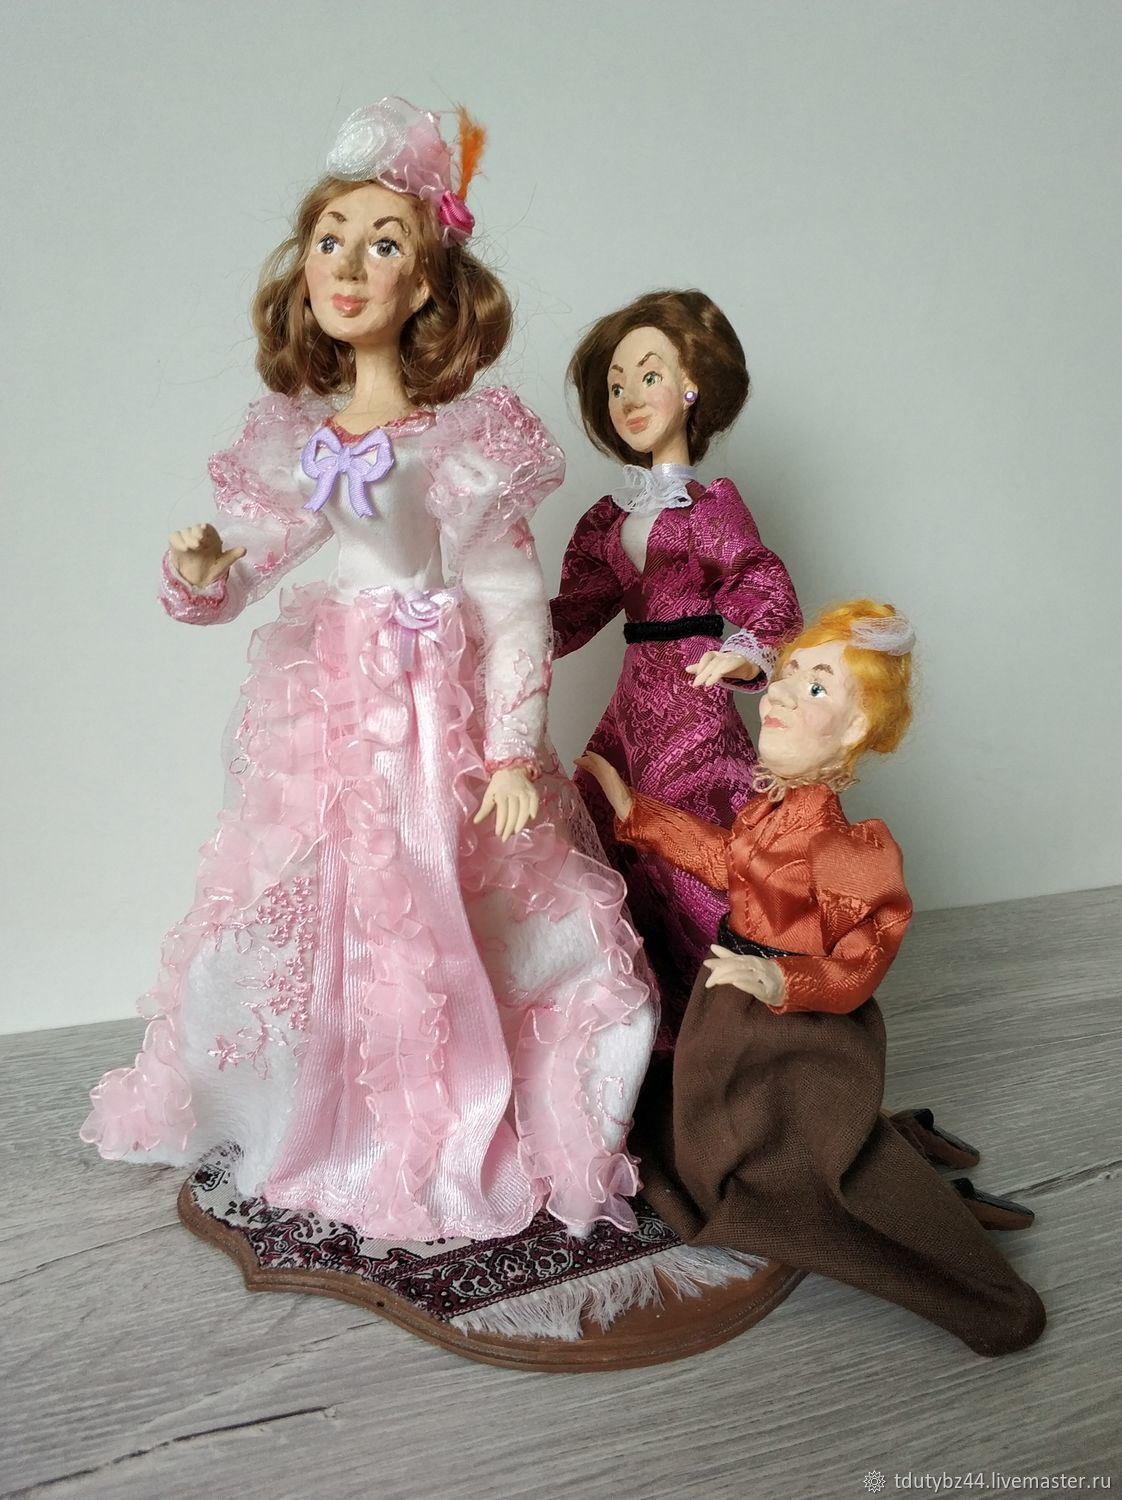 Author's doll BEFORE PUBLICATION, Dolls, Moscow,  Фото №1